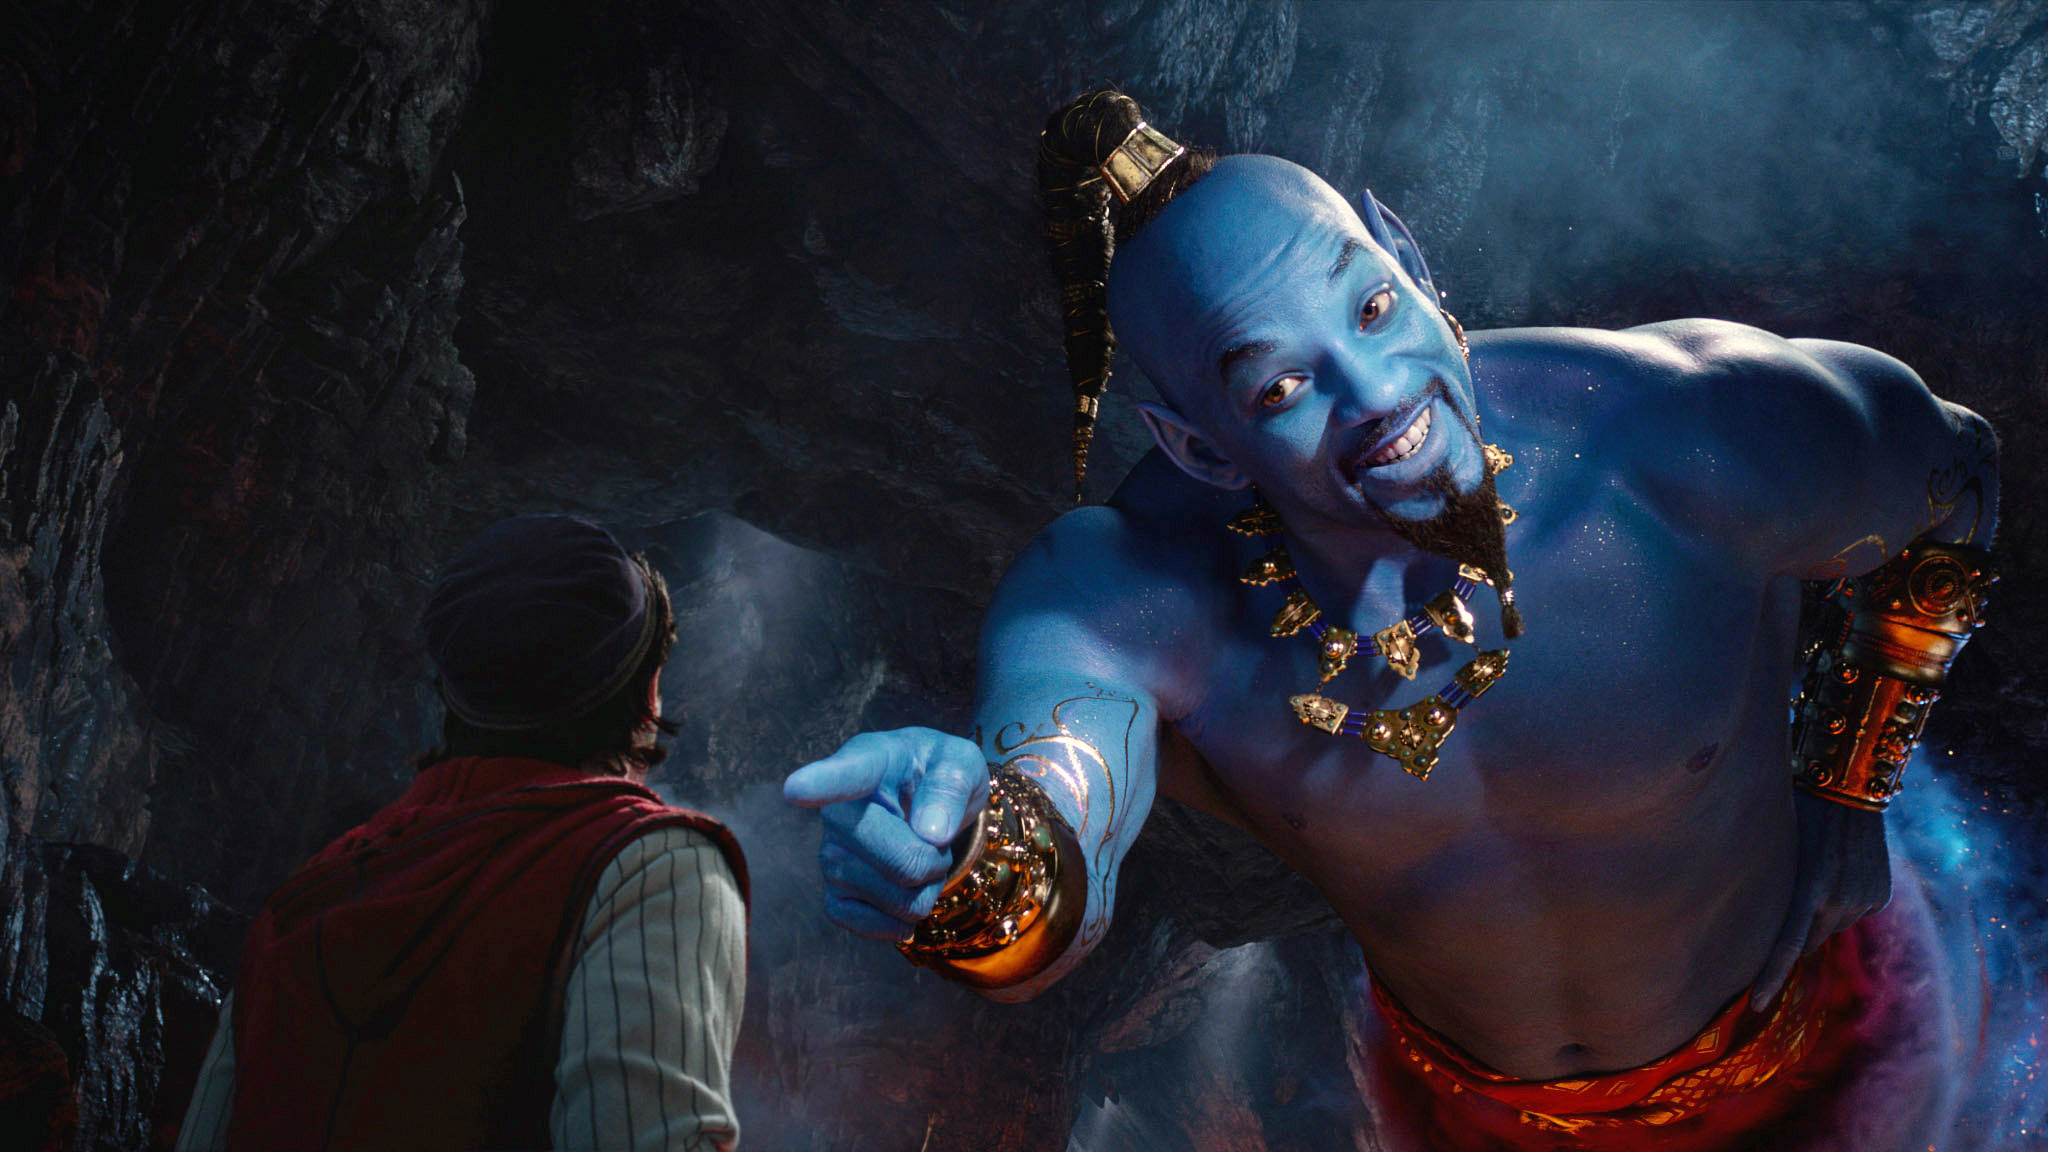 Photo of Will Smith as the Genie pointing at Aladdin